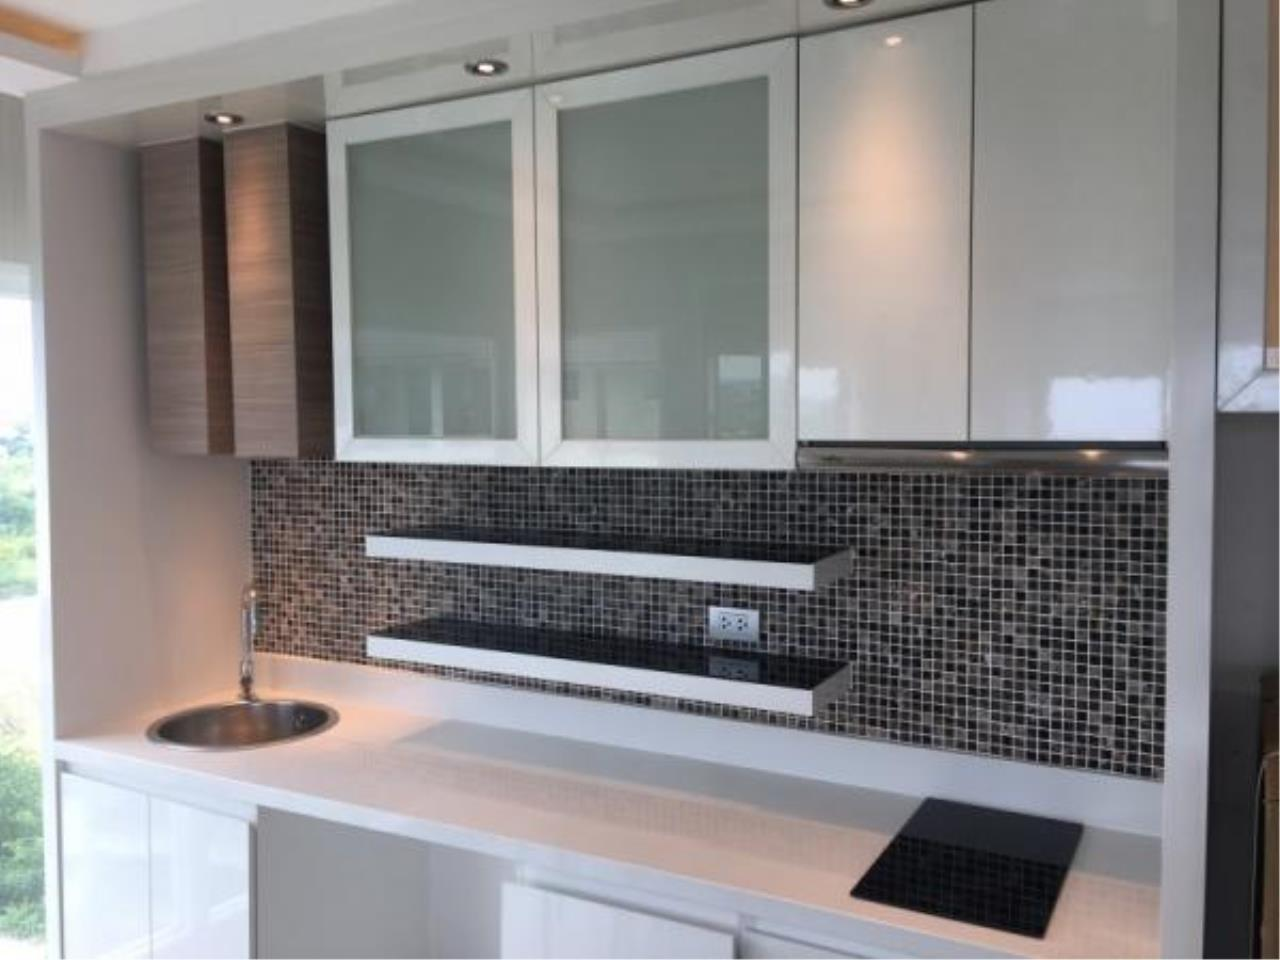 RE/MAX Town & Country Property Agency's Condo for sale in Jomtien 7